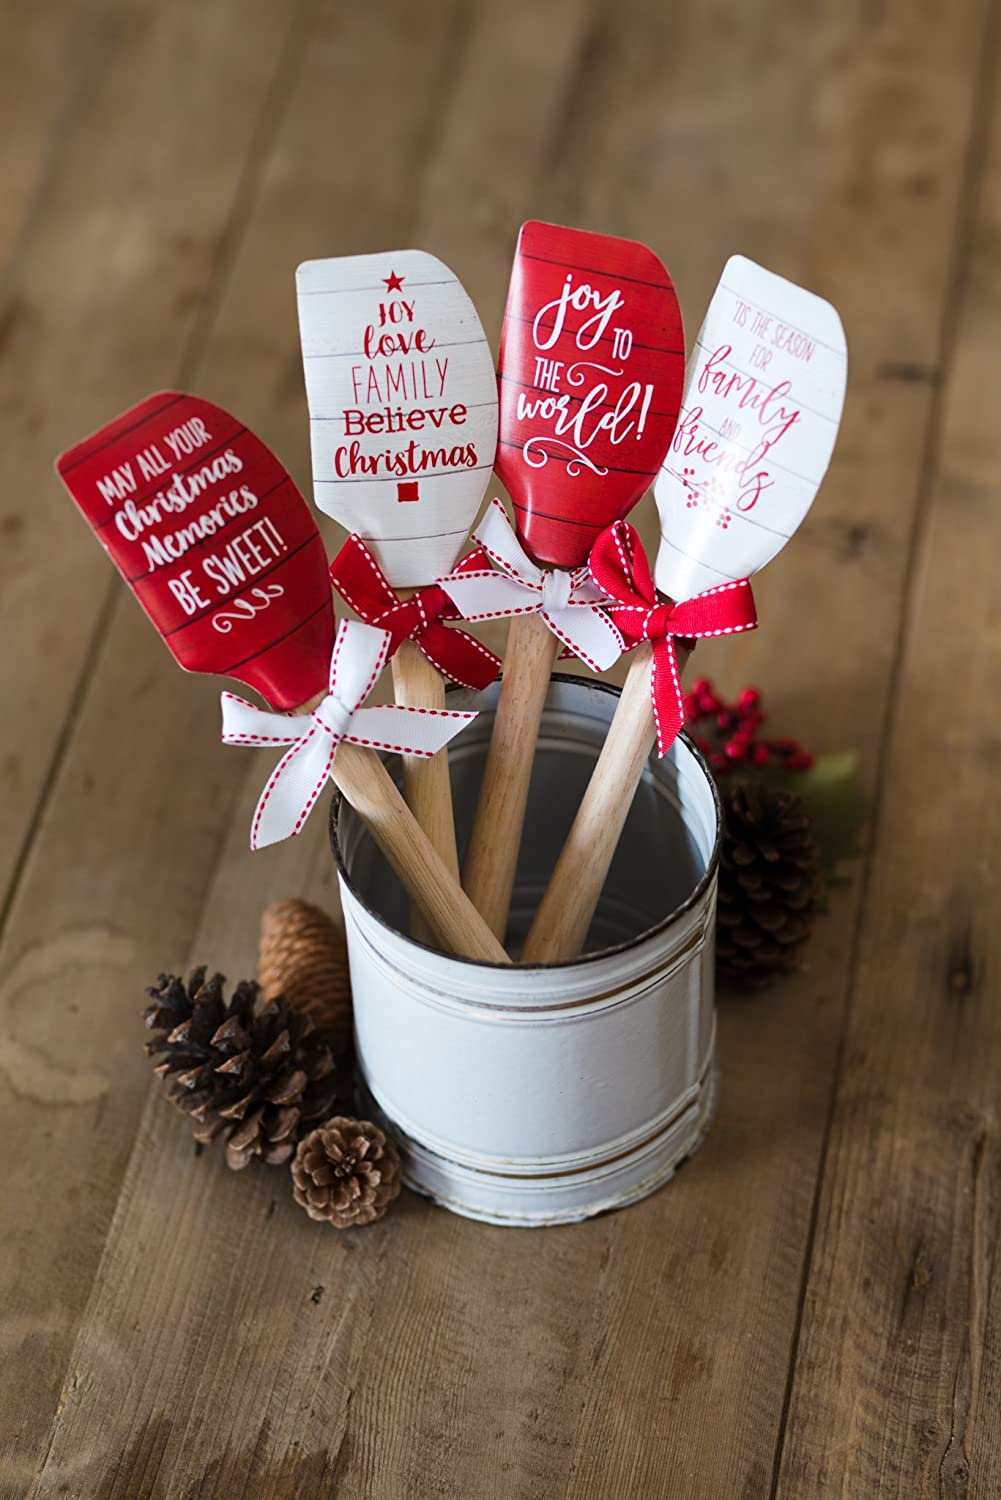 Silicone Spatula with Wooden Handle, Christmas Memories Be Sweet